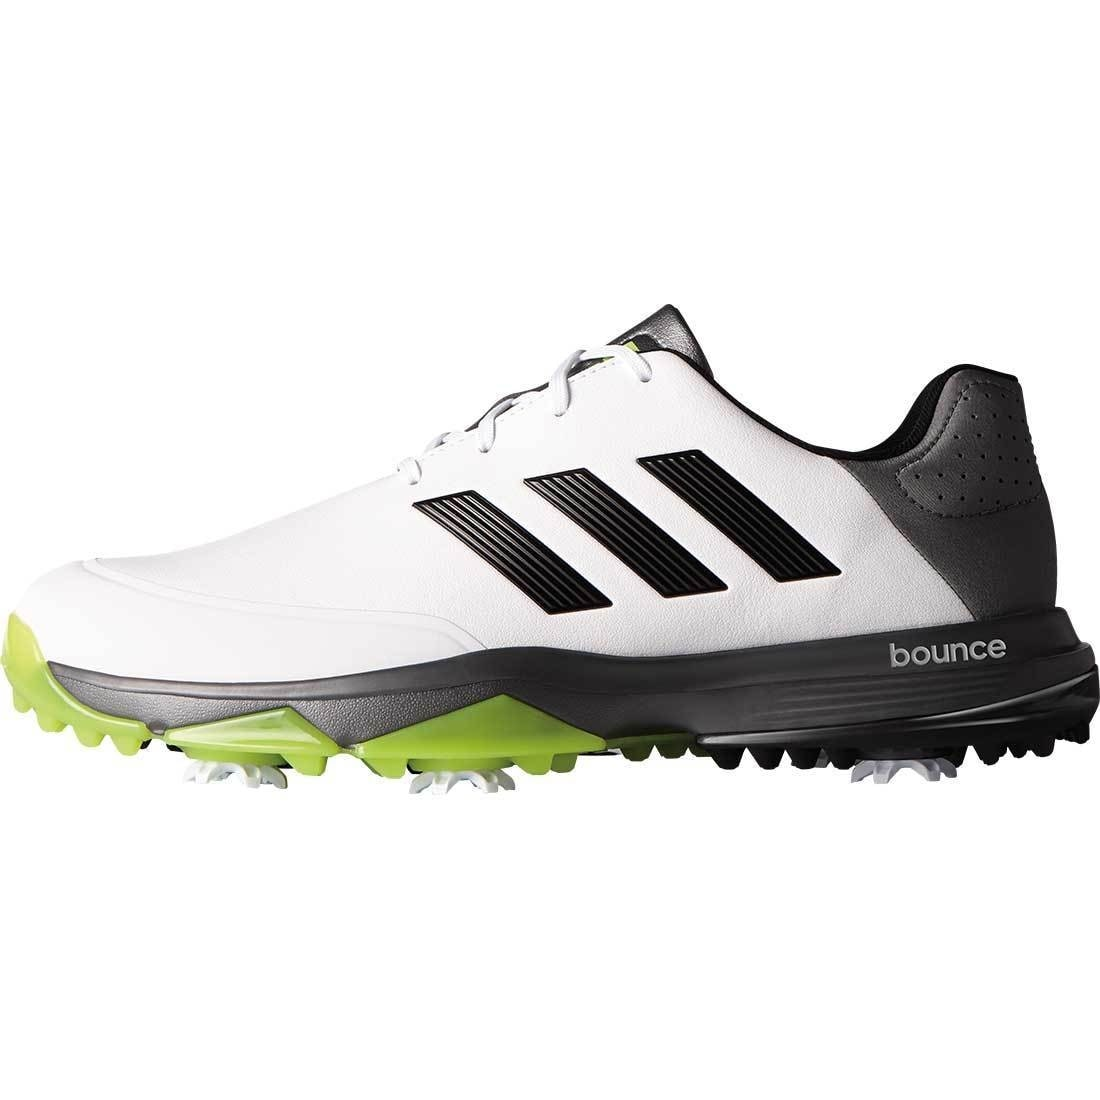 Buy Size 9.5 Adidas Men s Golf Shoes Online at Overstock  0be68a21ffb